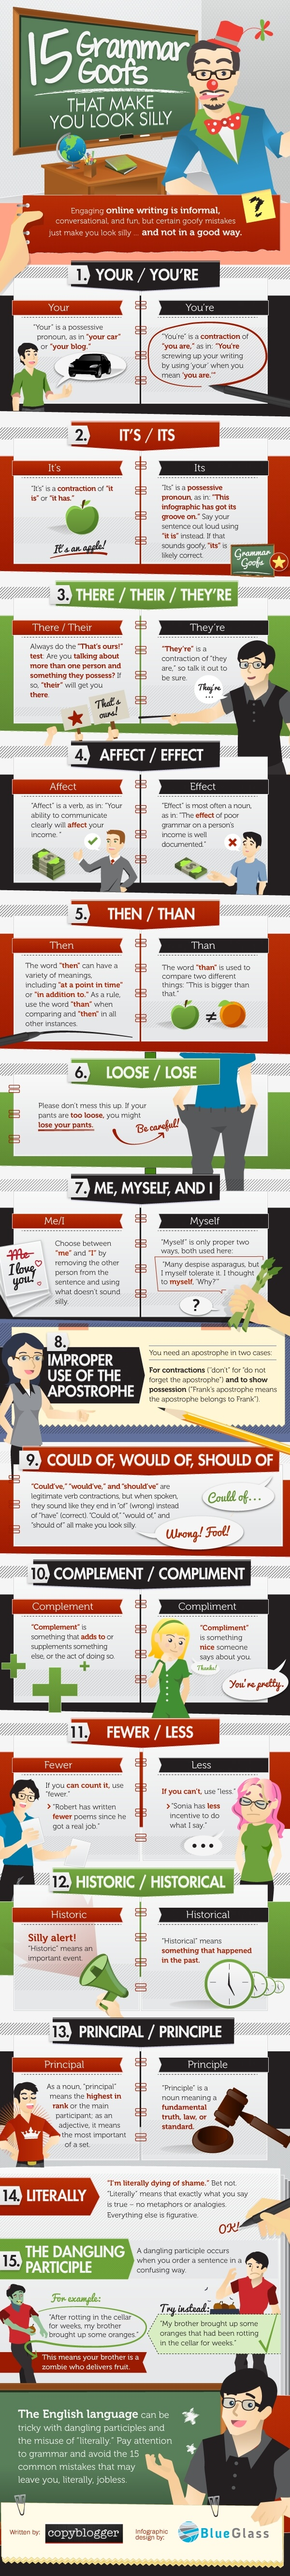 15 Grammar Goofs That Make You Look Silly Infographic